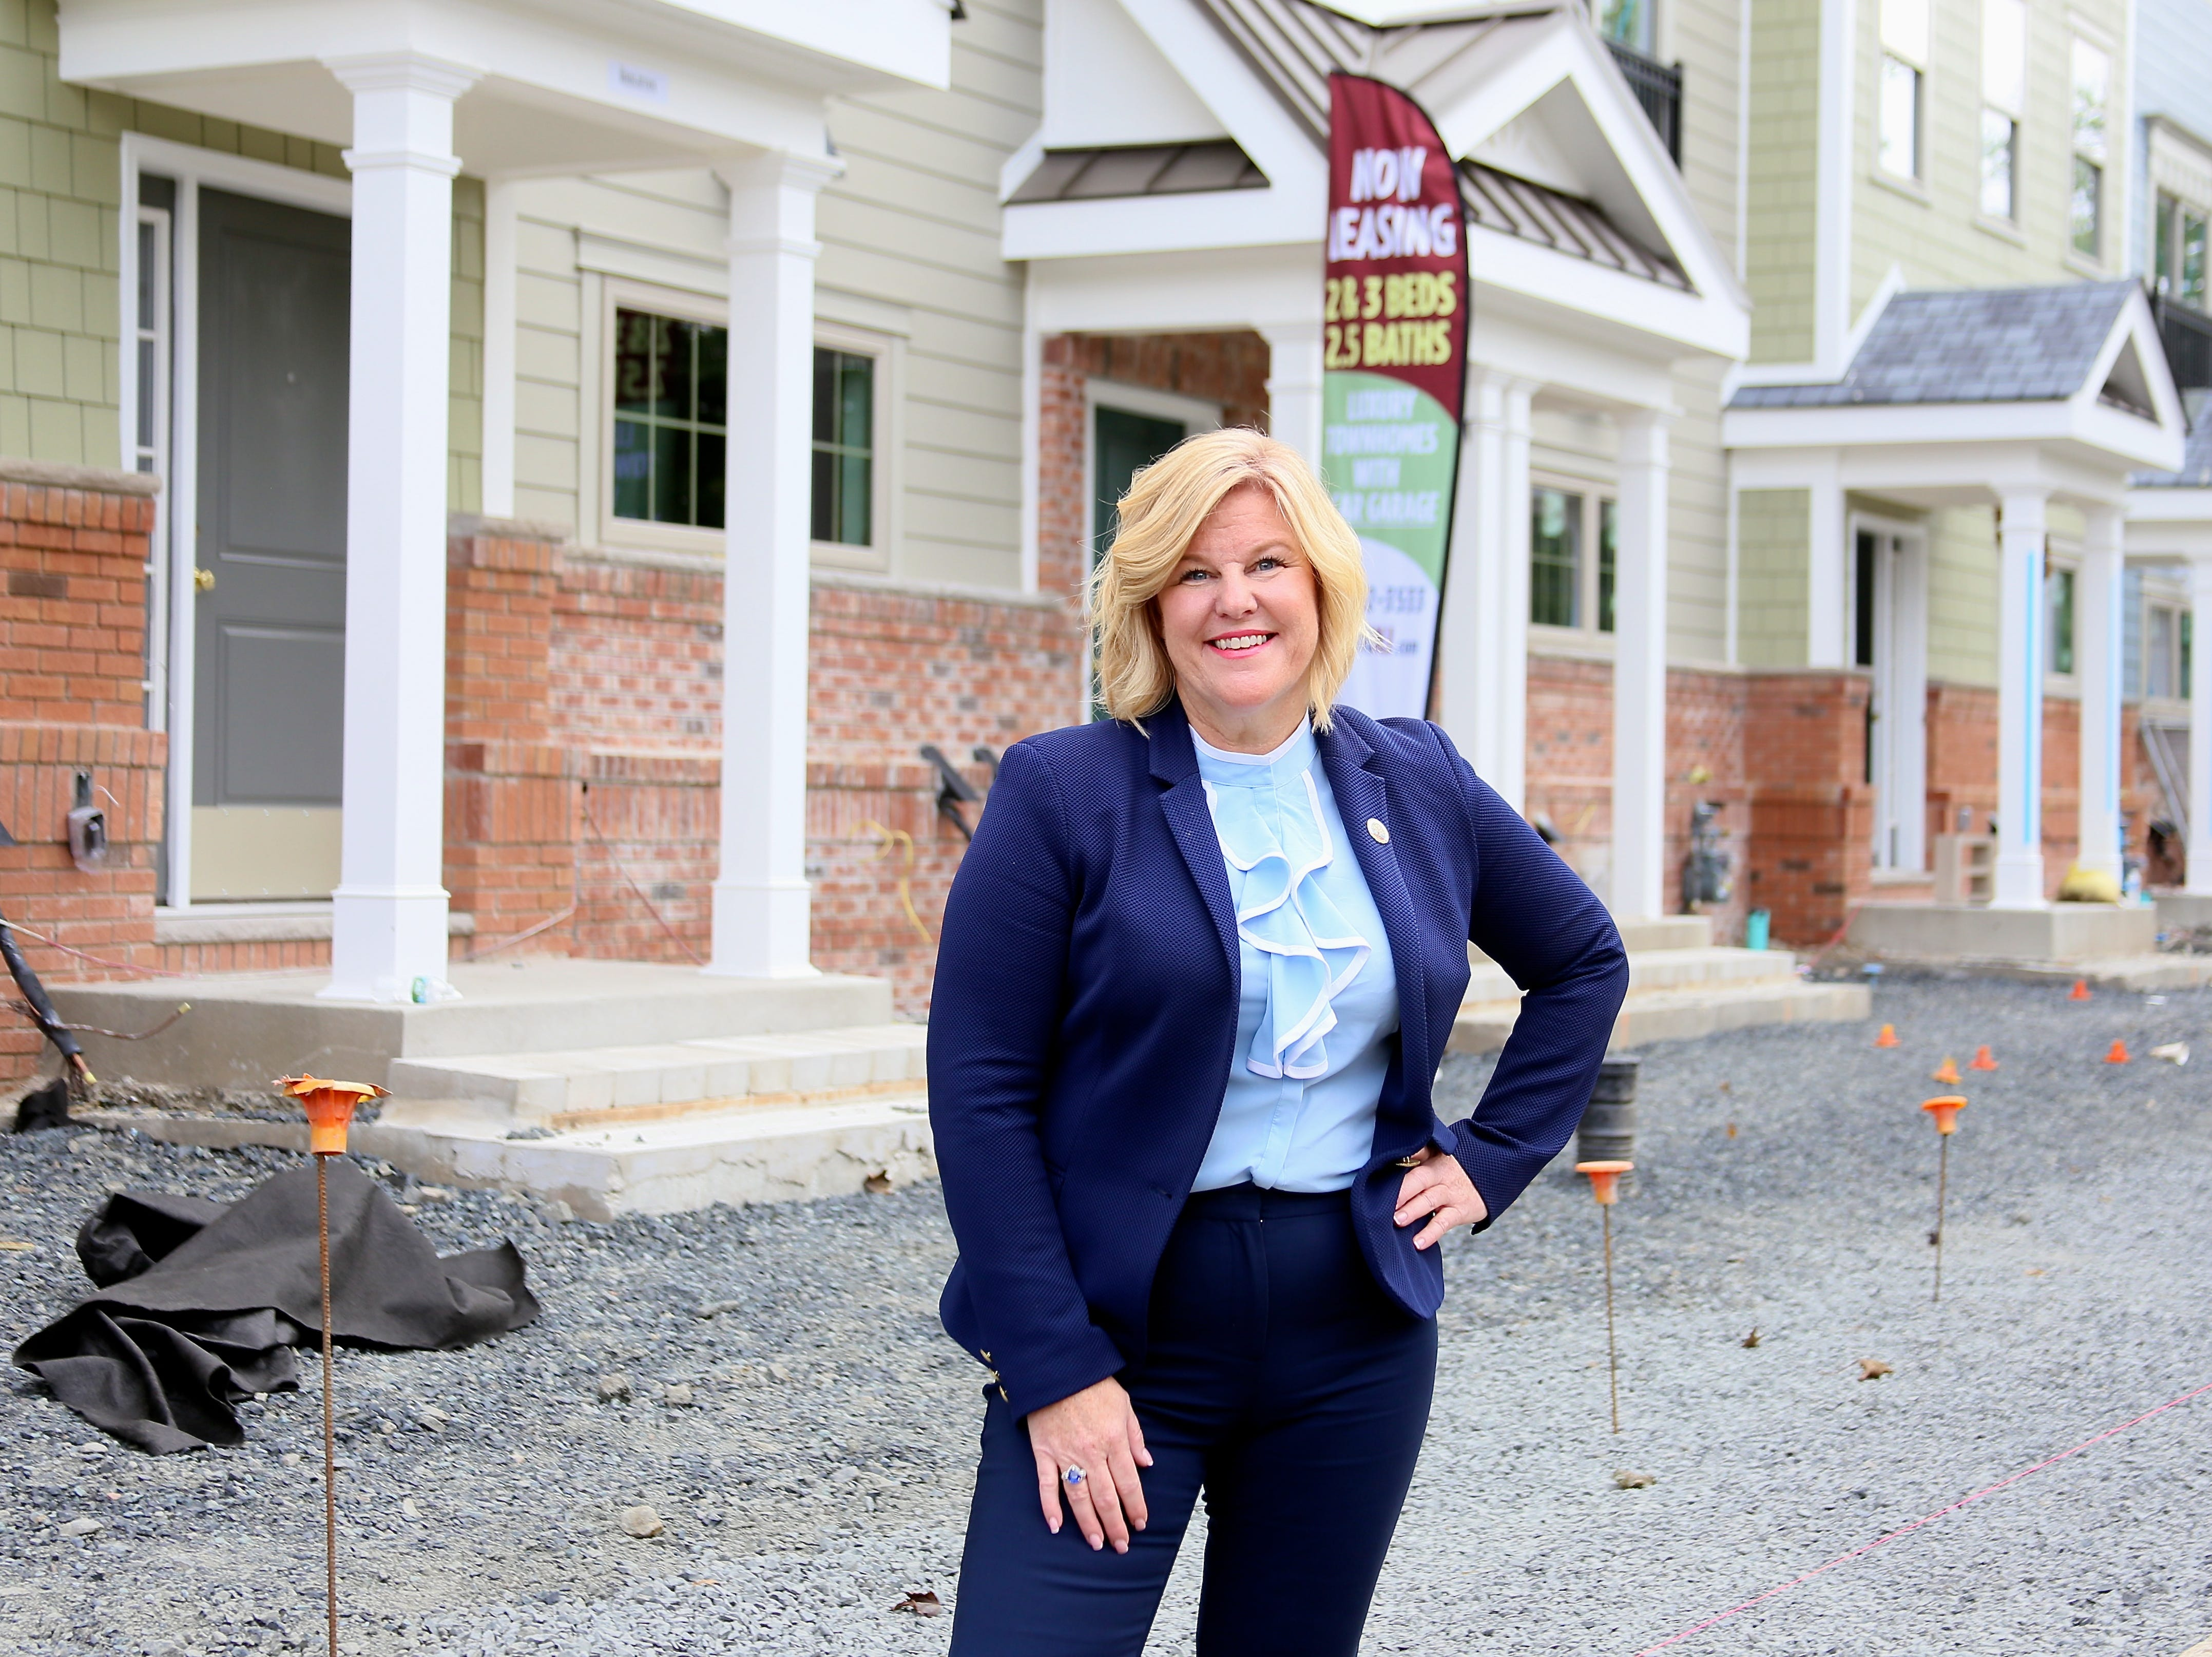 Fanwood Mayor Colleen Mahr is pictured outside Station Square at Fanwood, 35 townhouse-style rentals available now and to open in April. The project is one of two that complete the borough's downtown redevelopment plan.